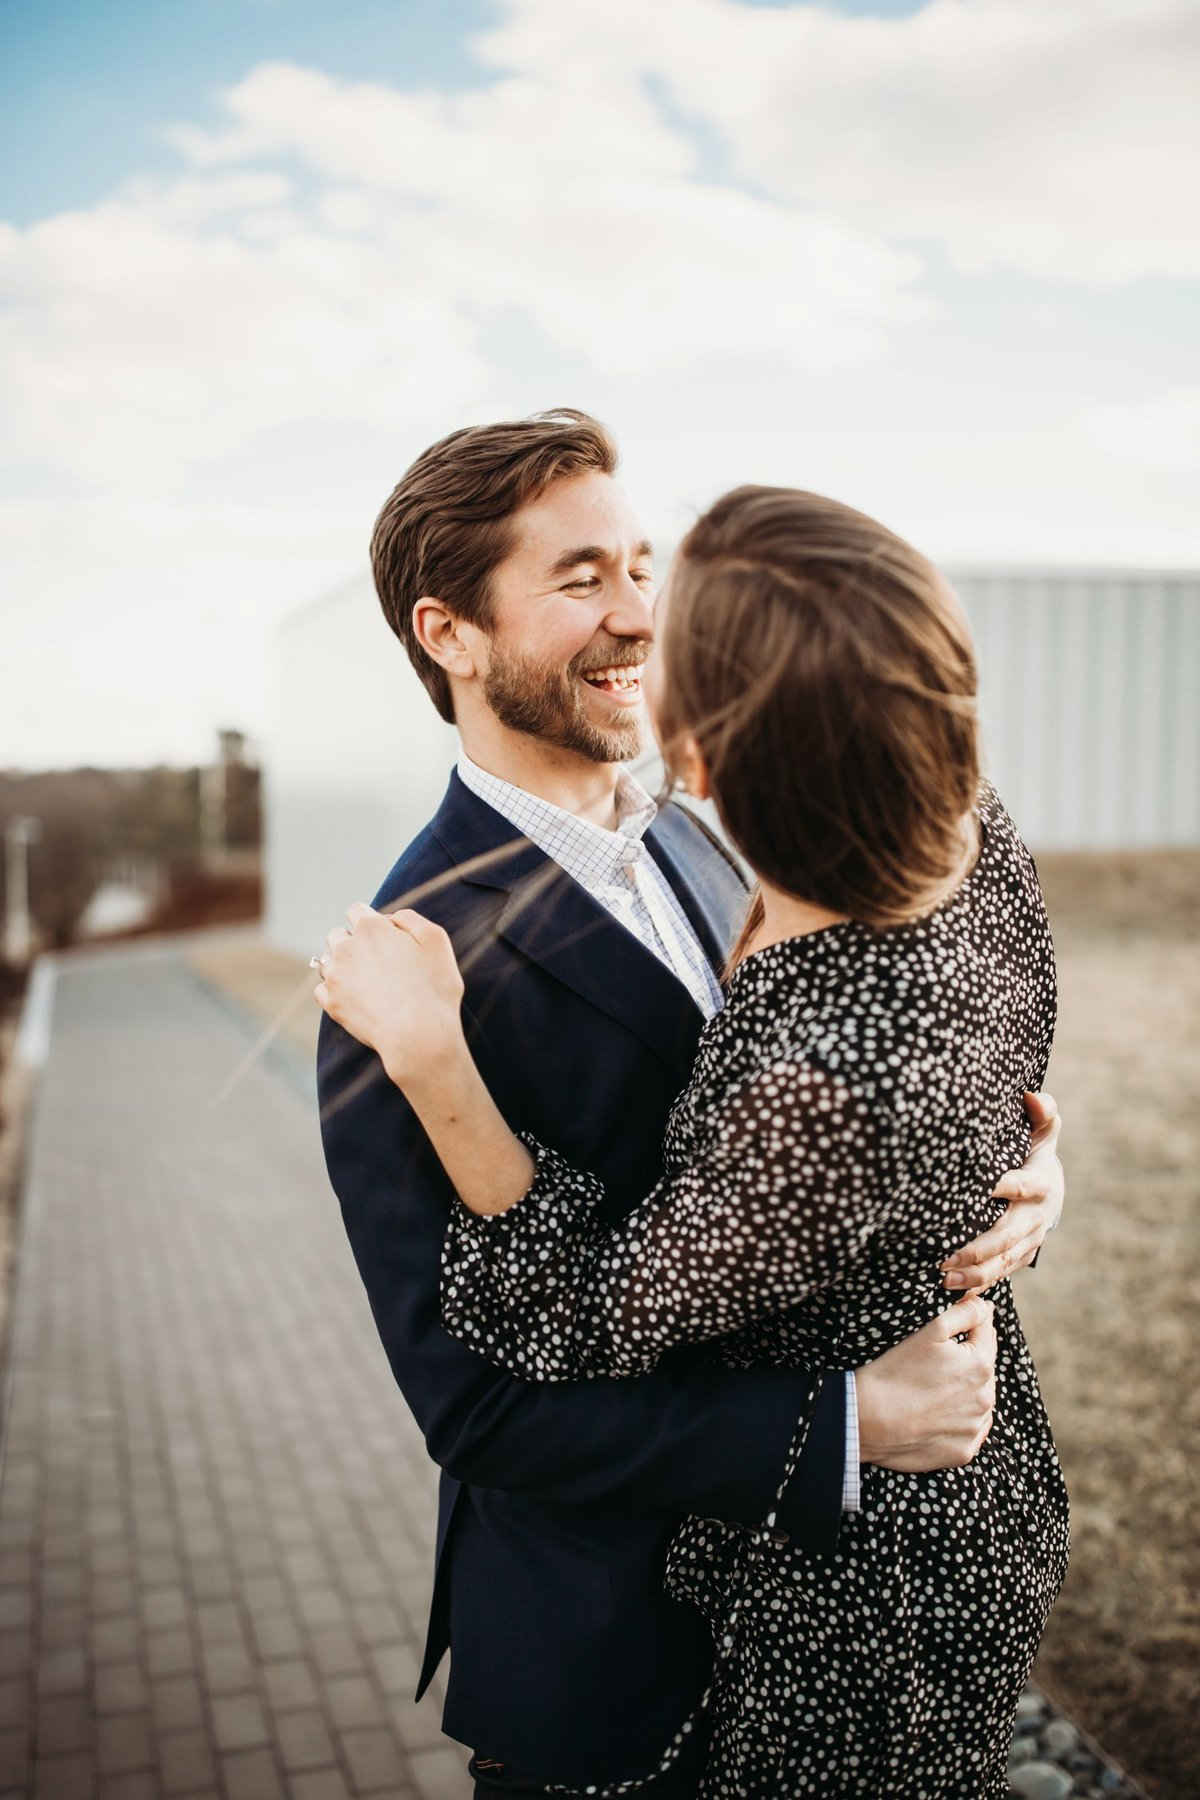 Kansas City Salt Lake City Destination Wedding Photographer_0208